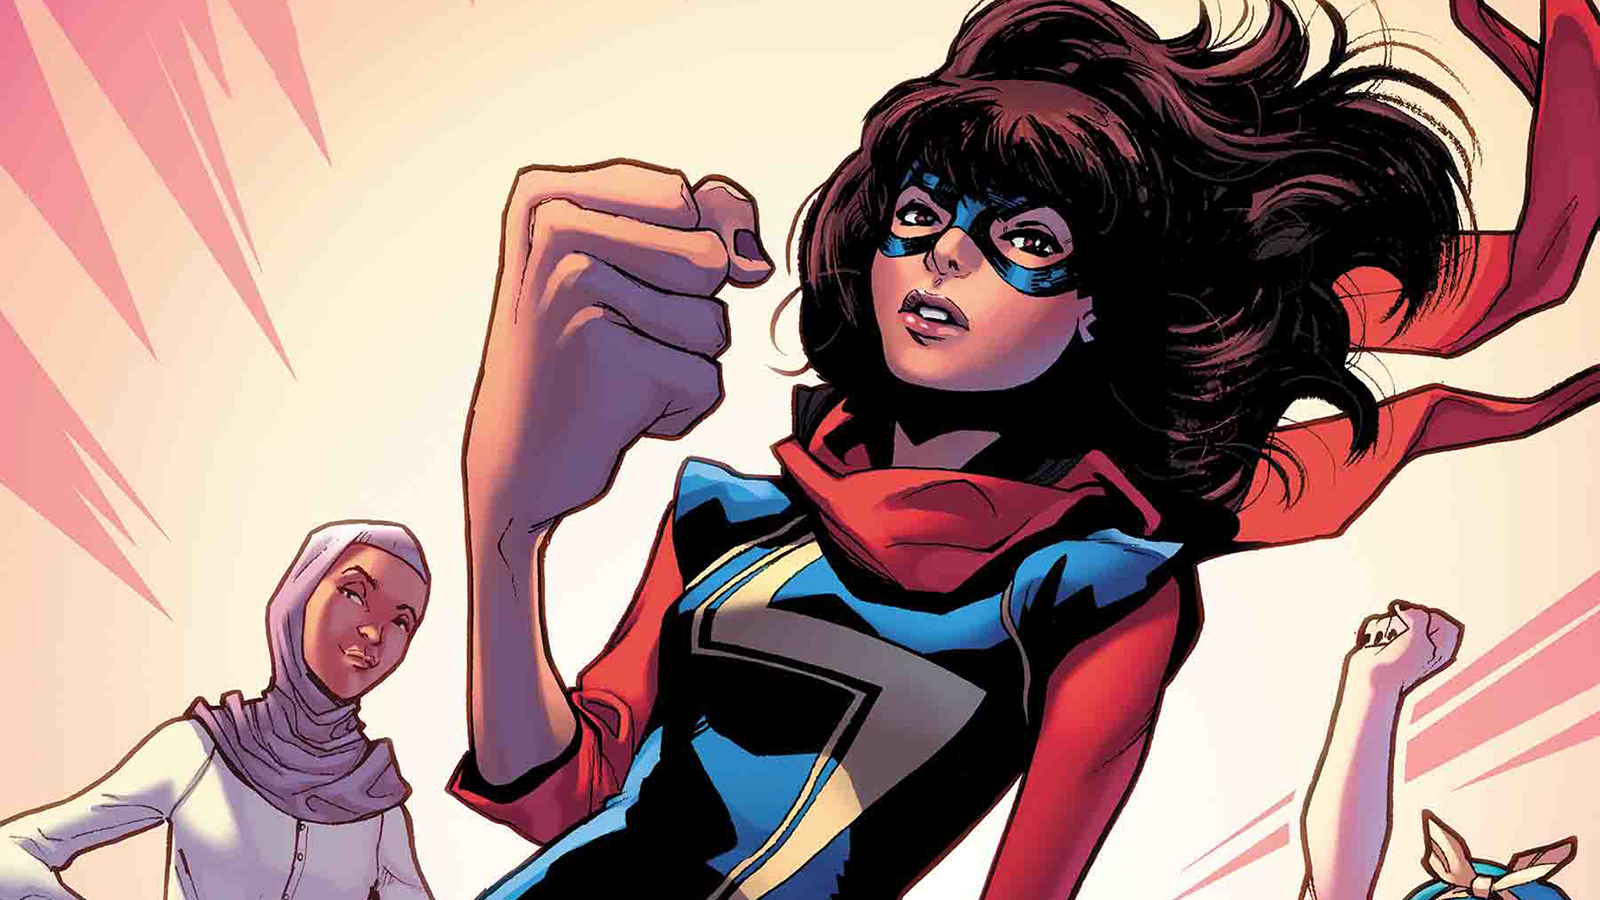 Kamala Khan as Ms Marvel